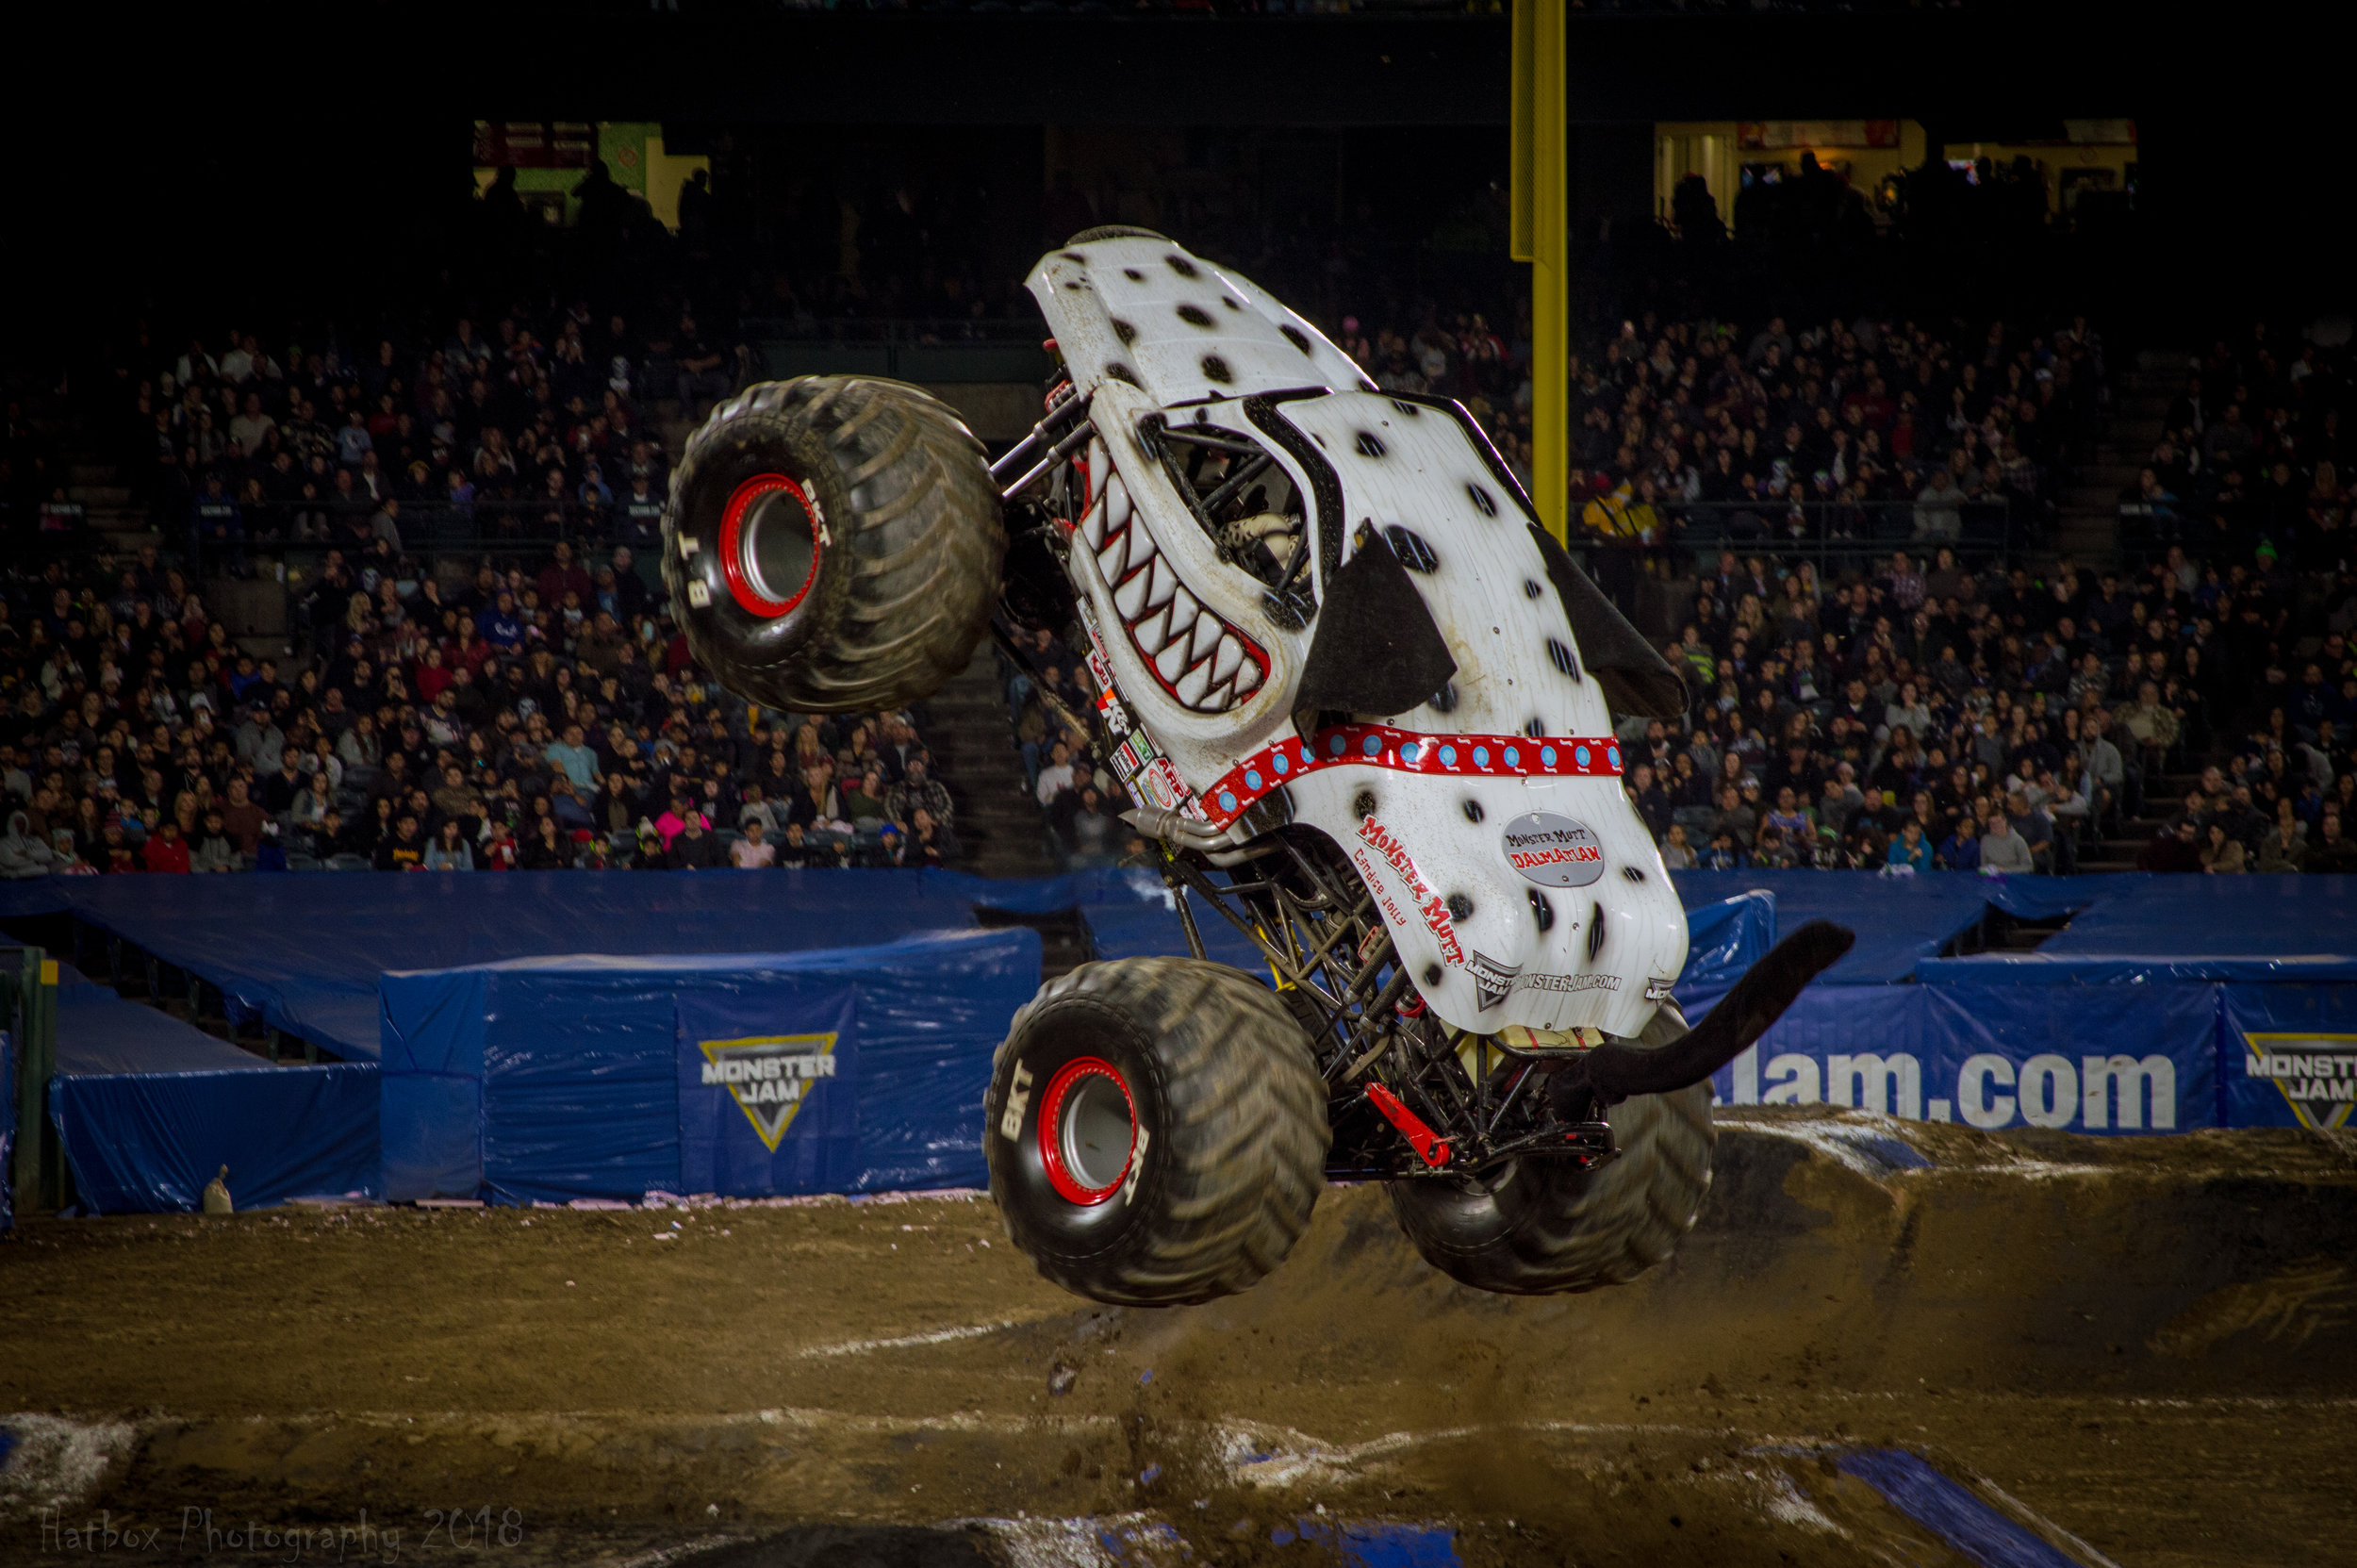 Monster Mutt Dalmatian is another fan favorite and for good reason. Candice Jolly who usually drives at Angel Stadium is one of the best drivers on the circuit. She is not afraid to go fast or go big during freestyle. She is also one of the kindest and fan friendliest athletes in all of sports.